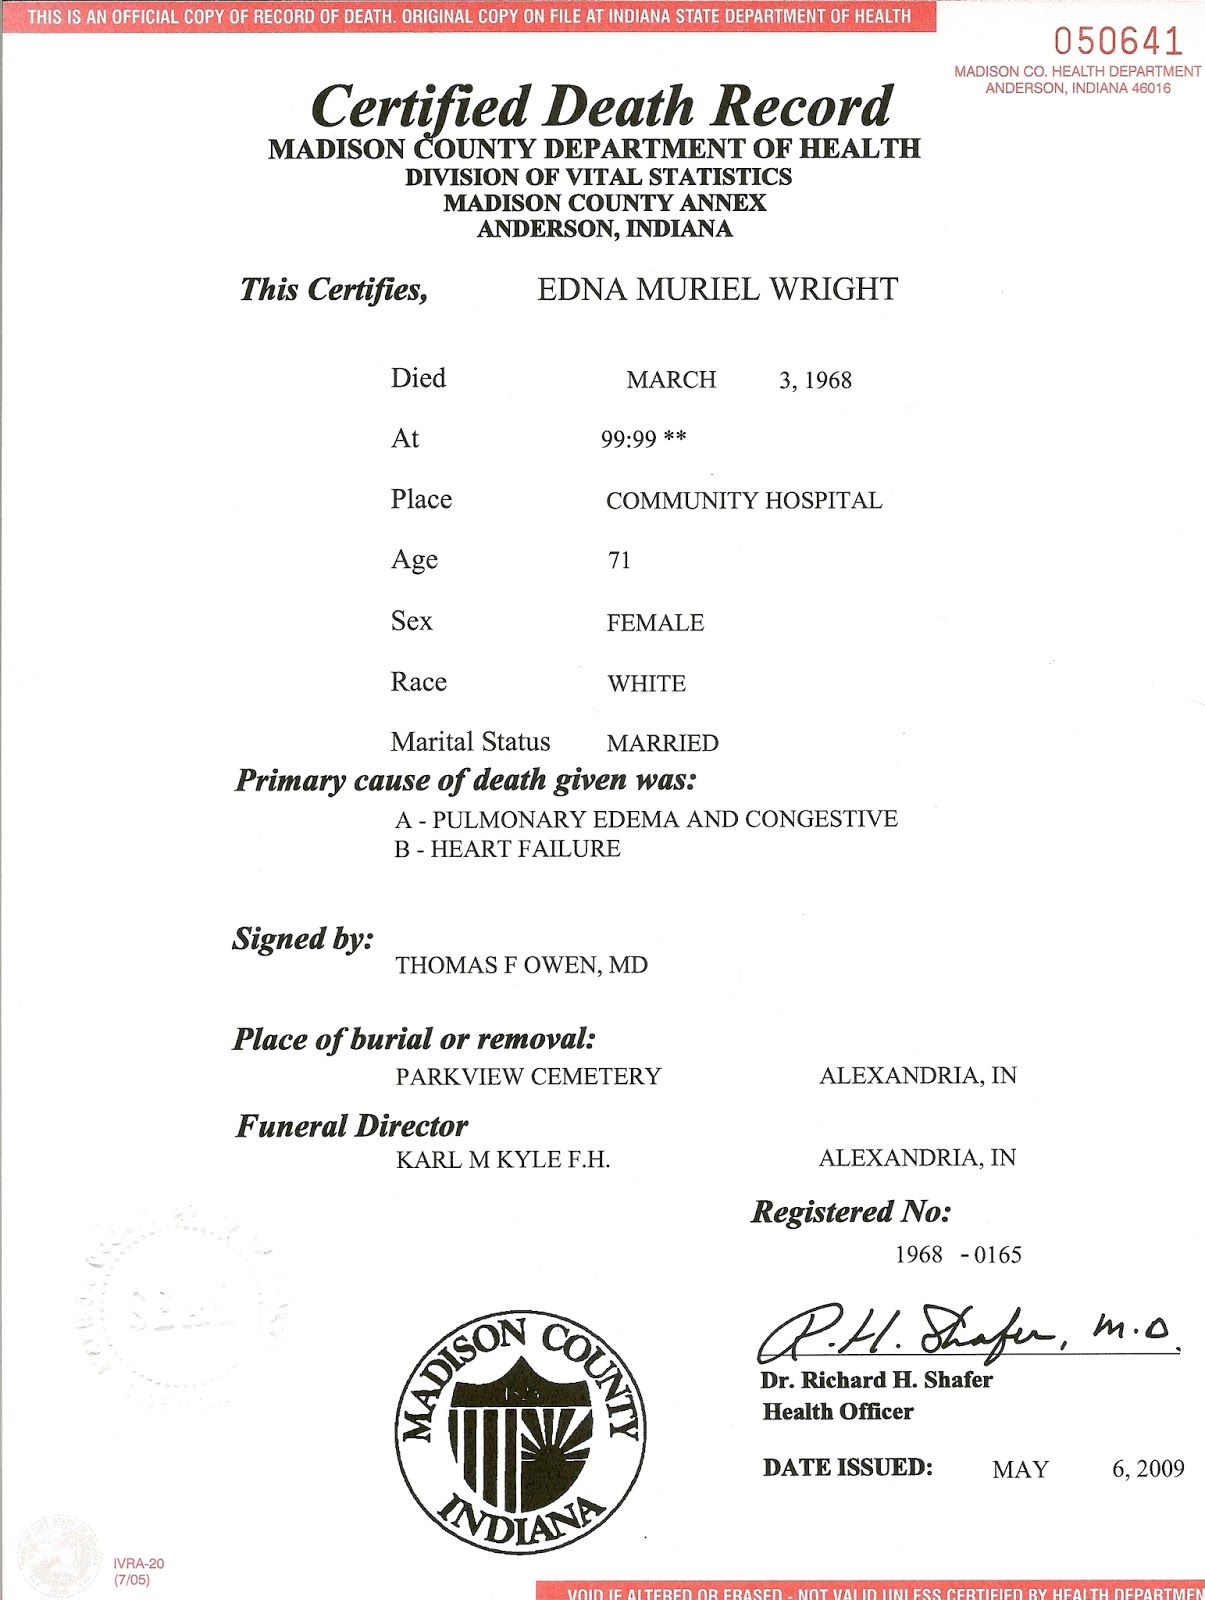 Moms dar process francis smalley documenting generation 3 edna muriel wright death certificate no 1968 0165 1968 madison county health department anderson indiana usa 1betcityfo Images